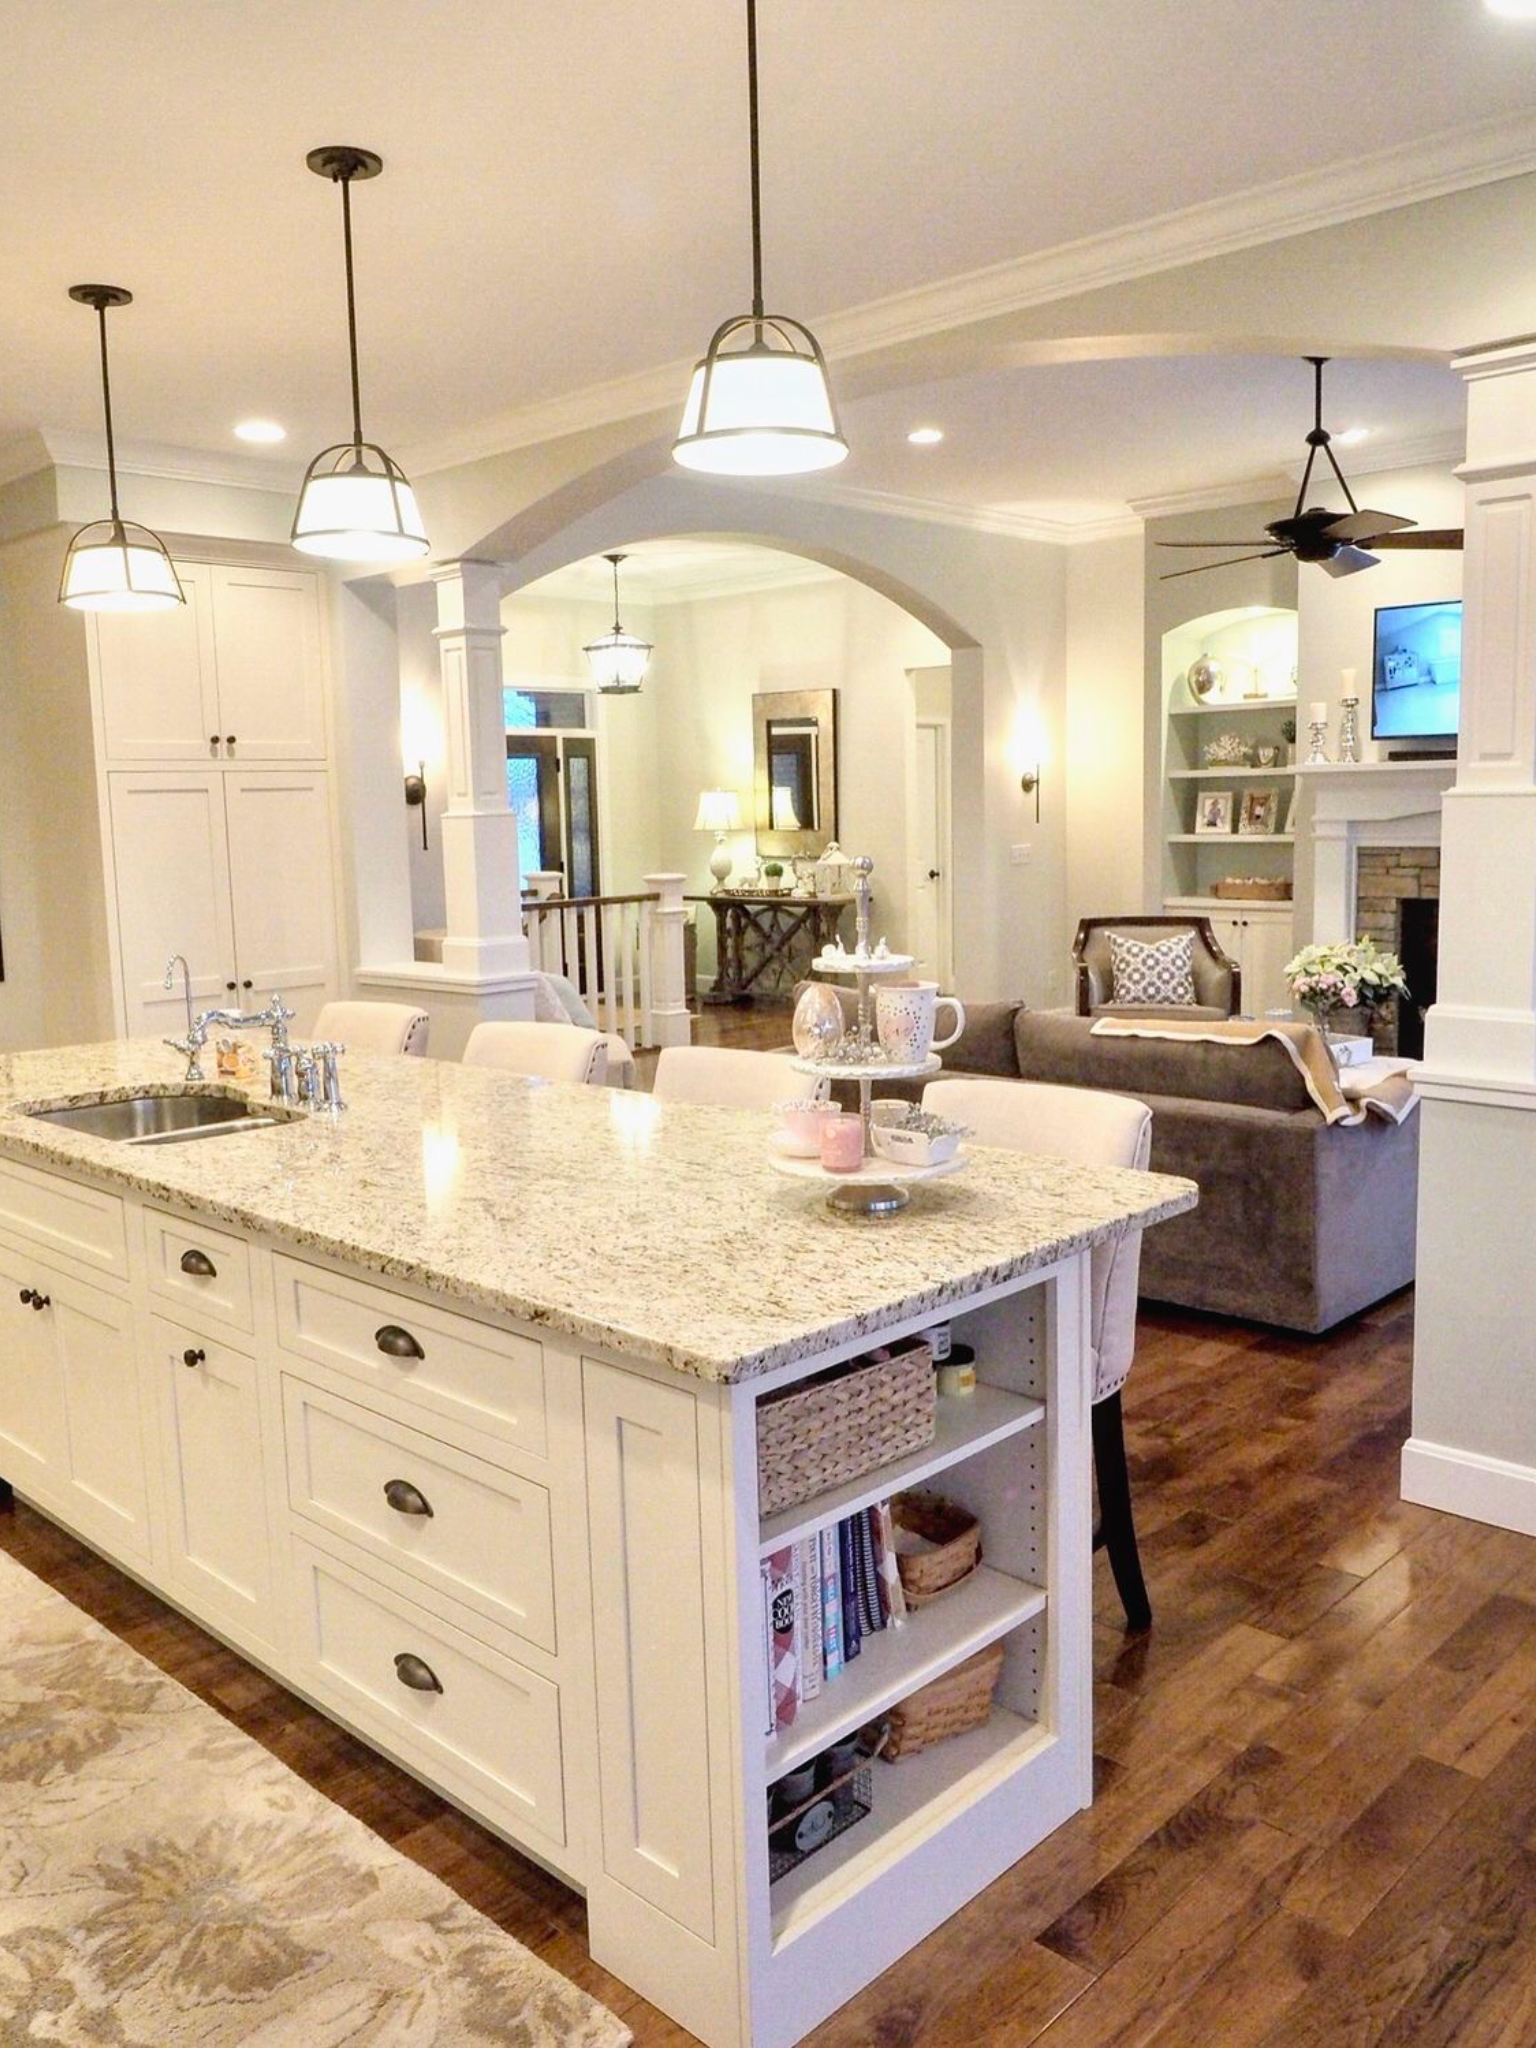 Off White Kitchen Images Enchanting White Kitchen Offwhite Cabinets Sherwin Williams Conservative Review